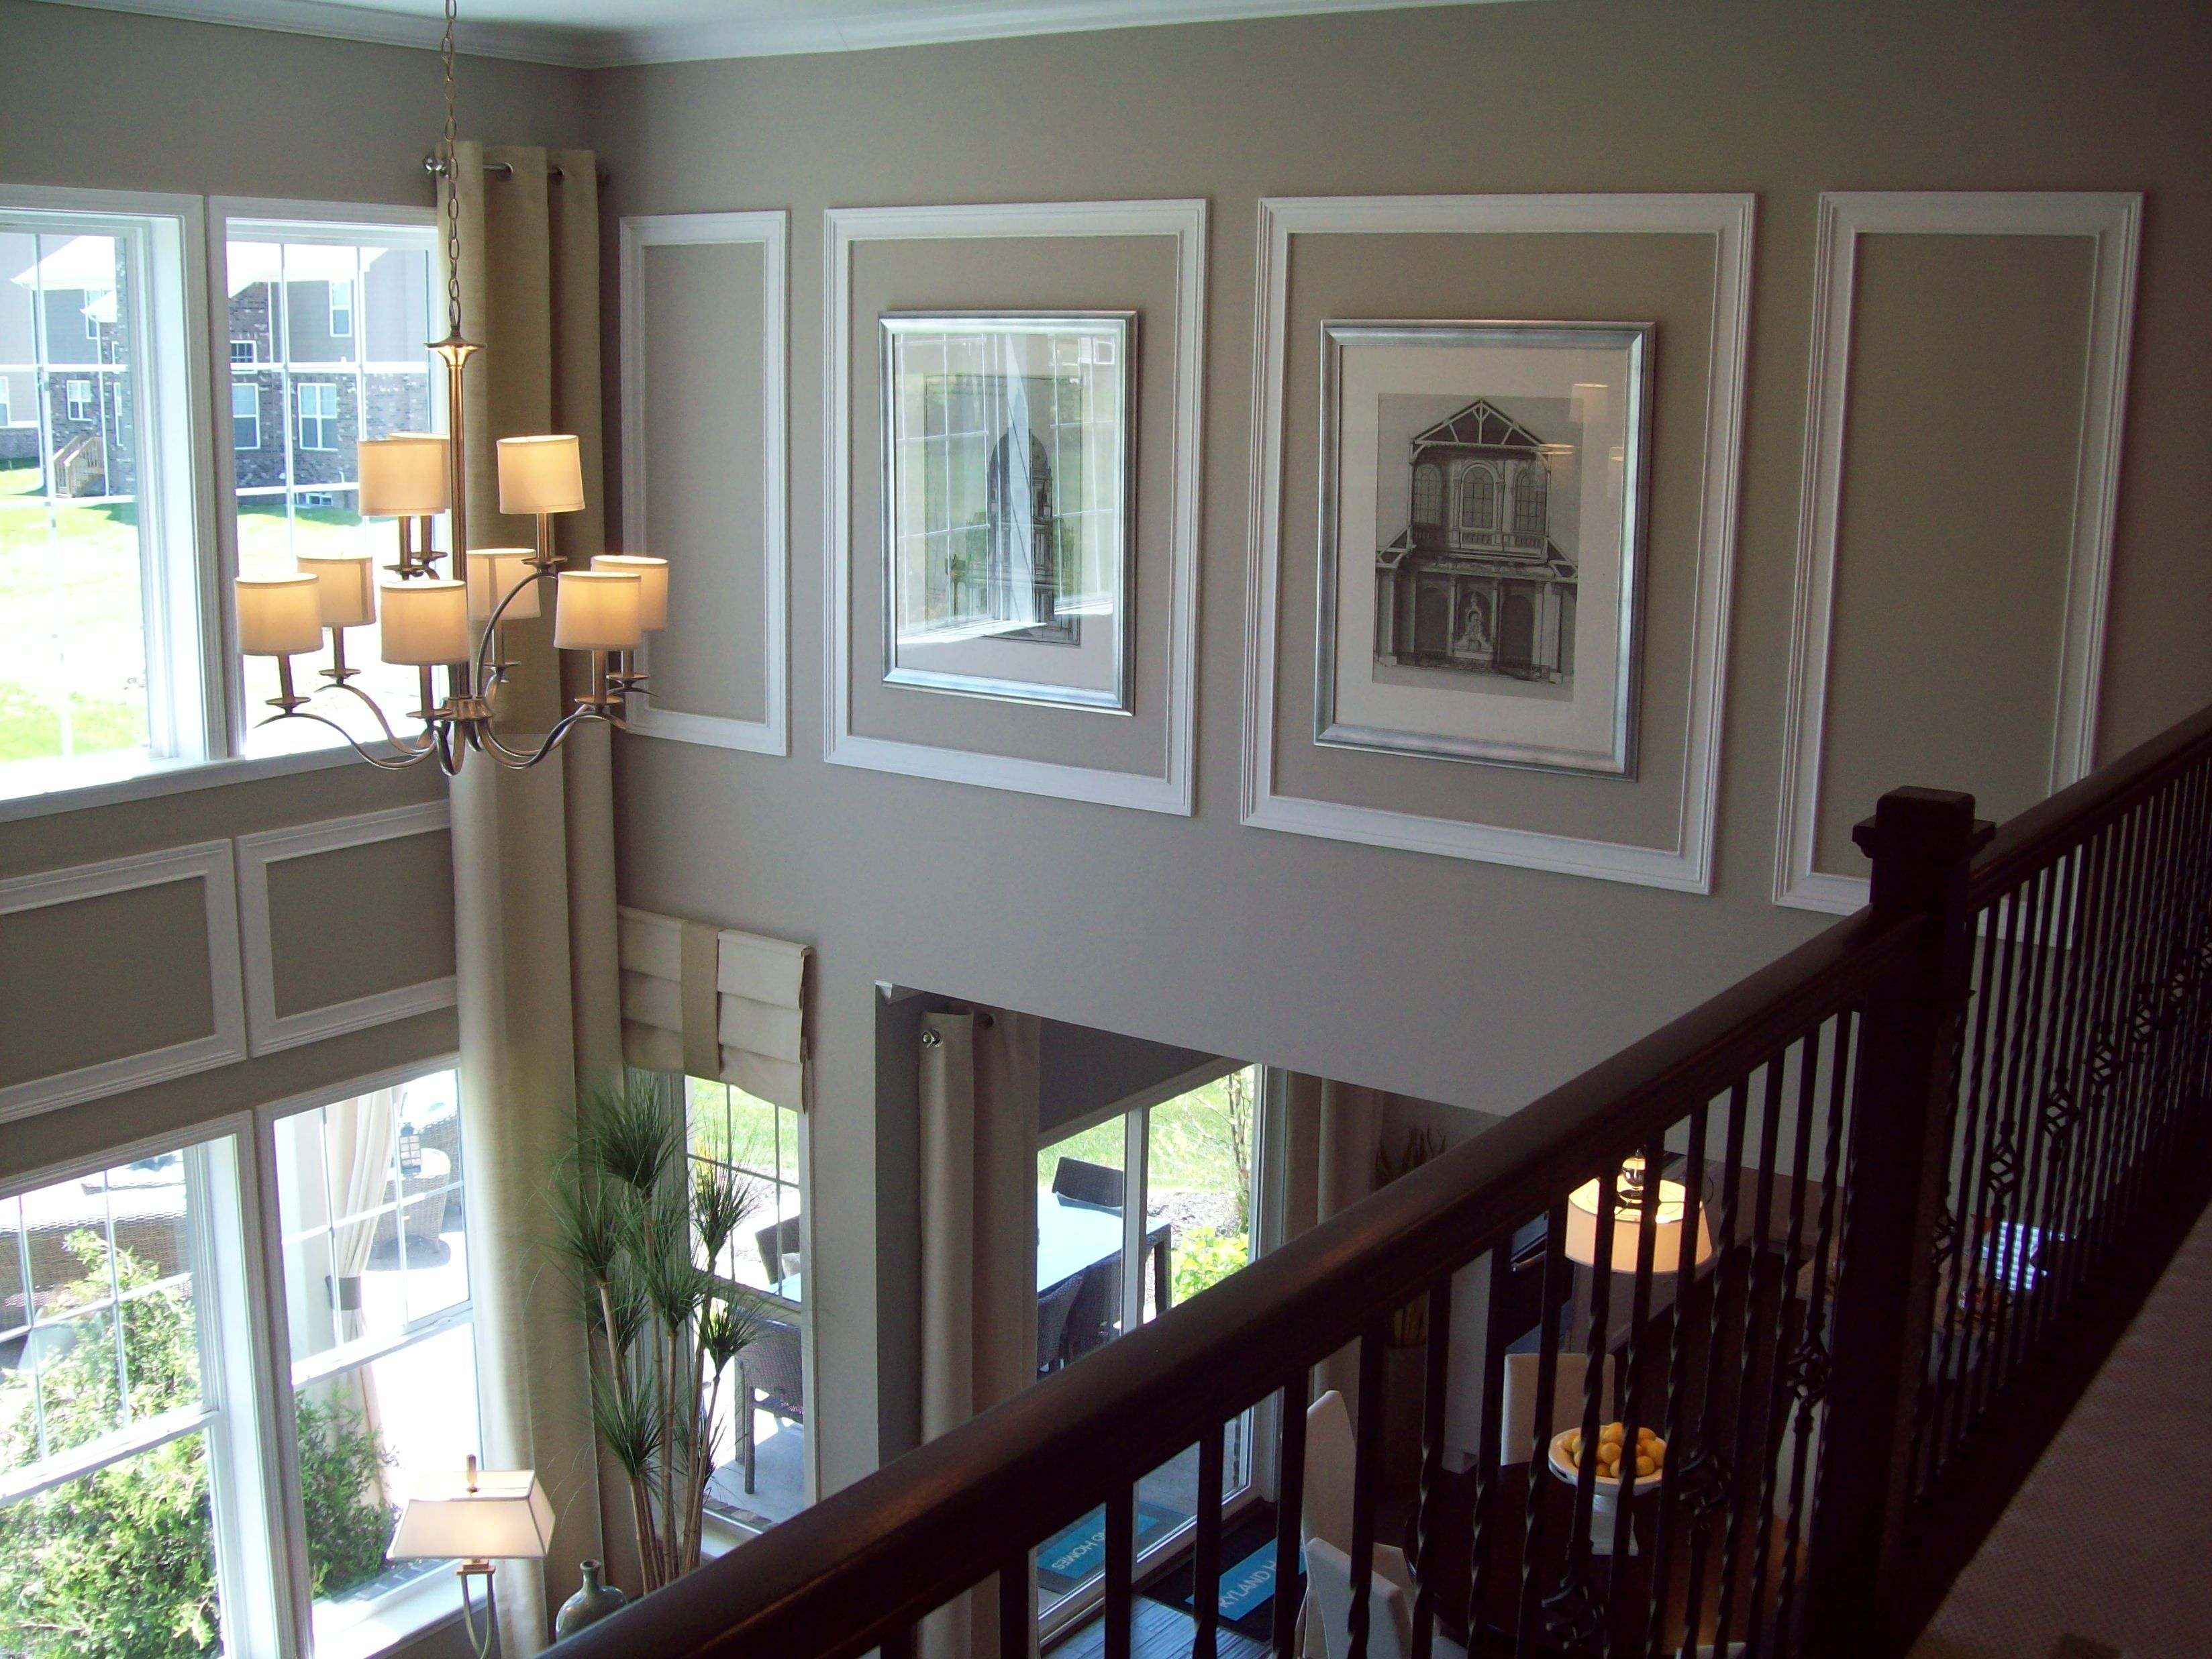 How To Decorate A Long Wall In The Living Room Using Wall Trim And